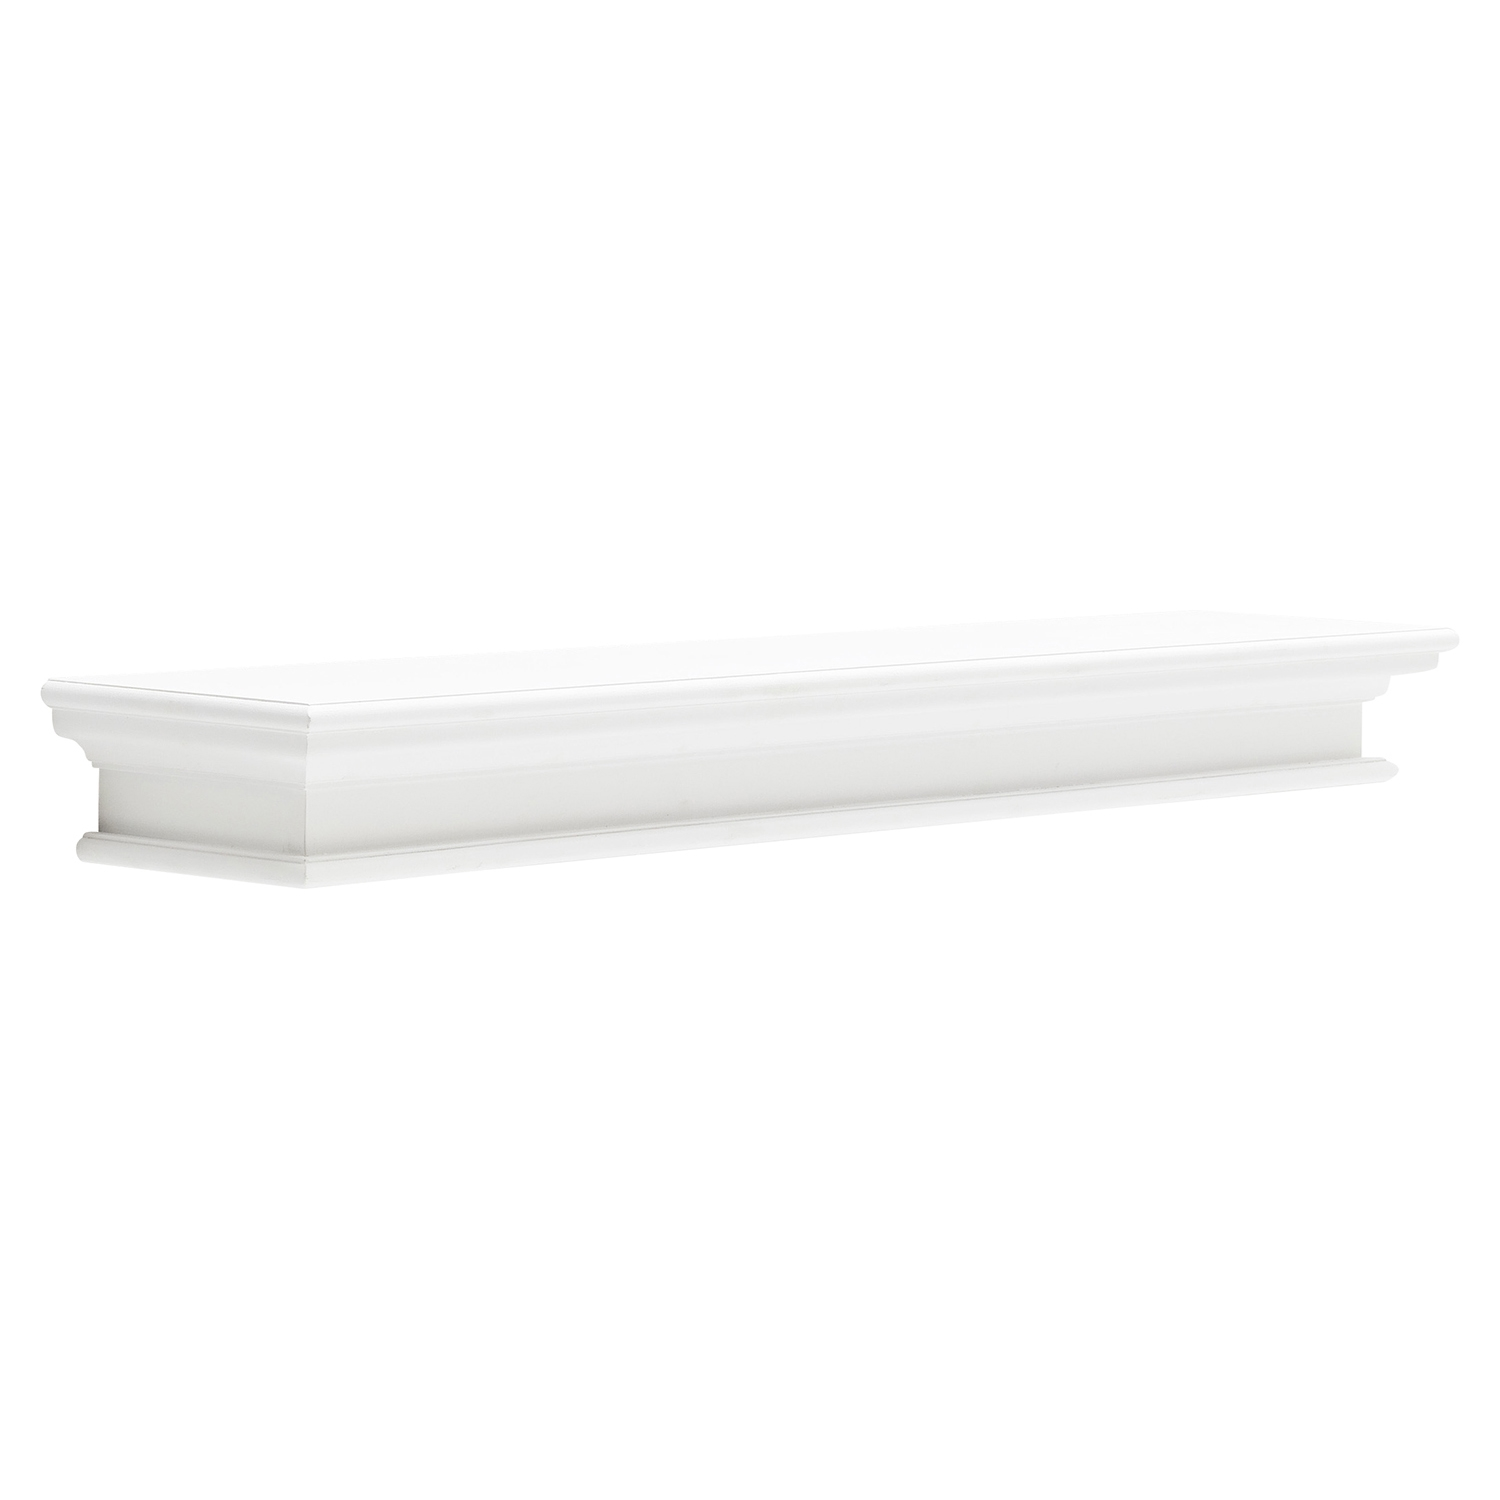 Halifax Floating Extra Long Wall Shelf - Pure White - NSOLO-D166